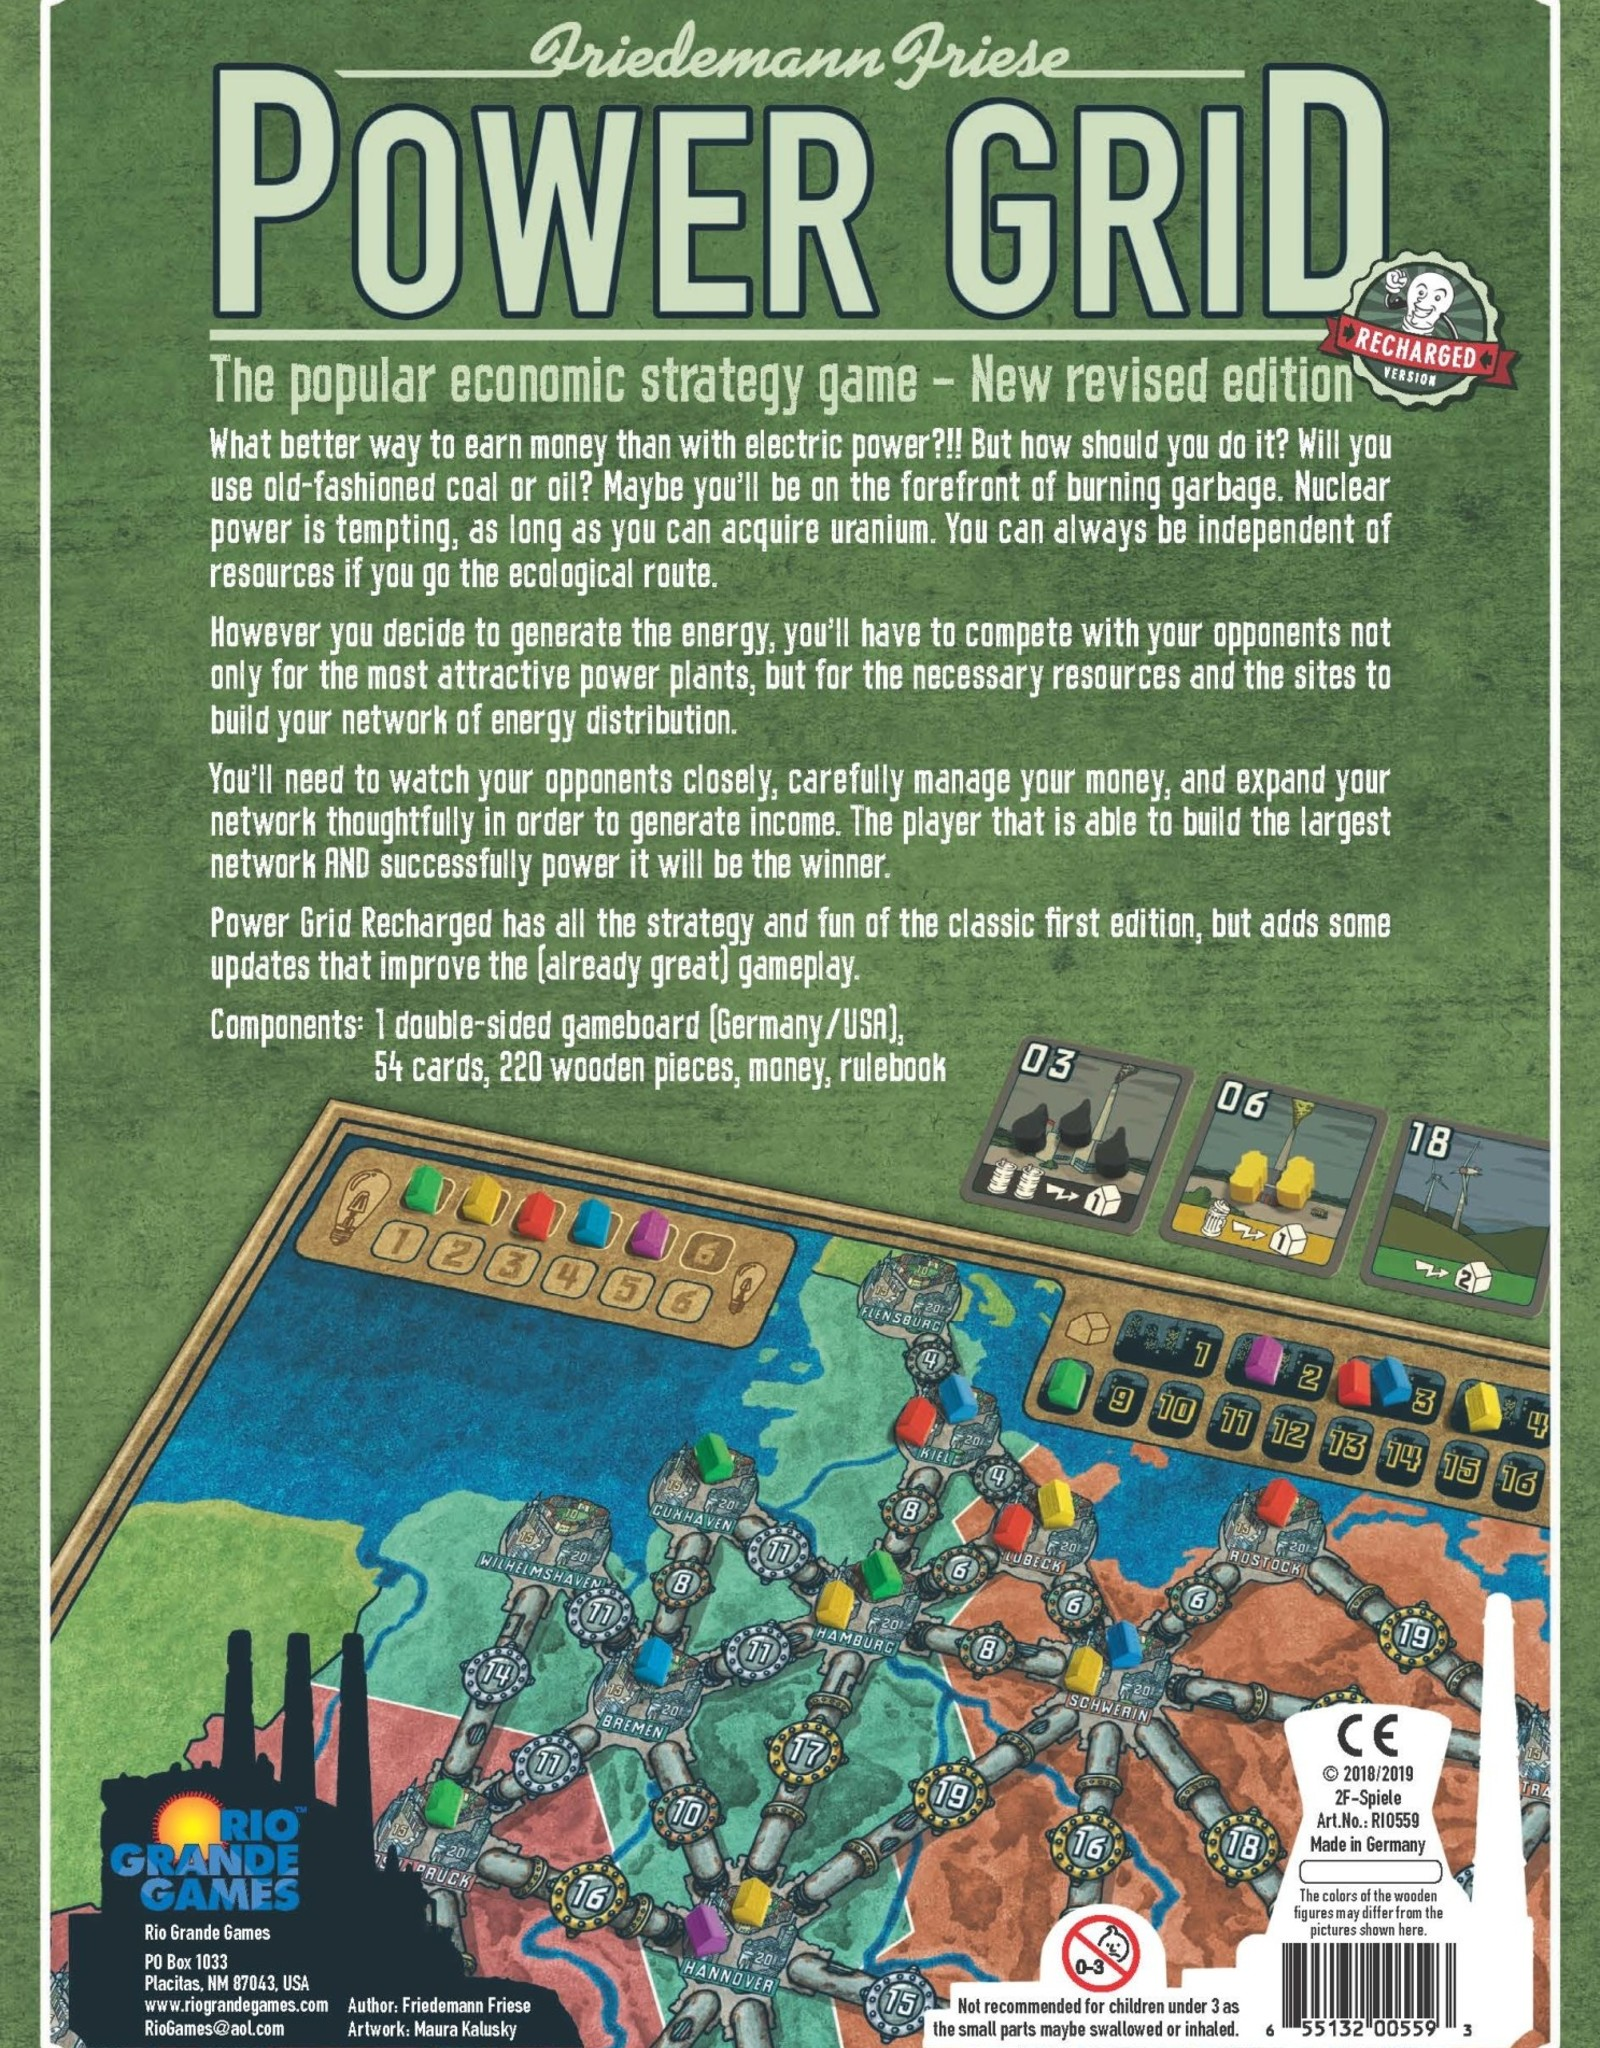 Rio Grande Games Power Grid